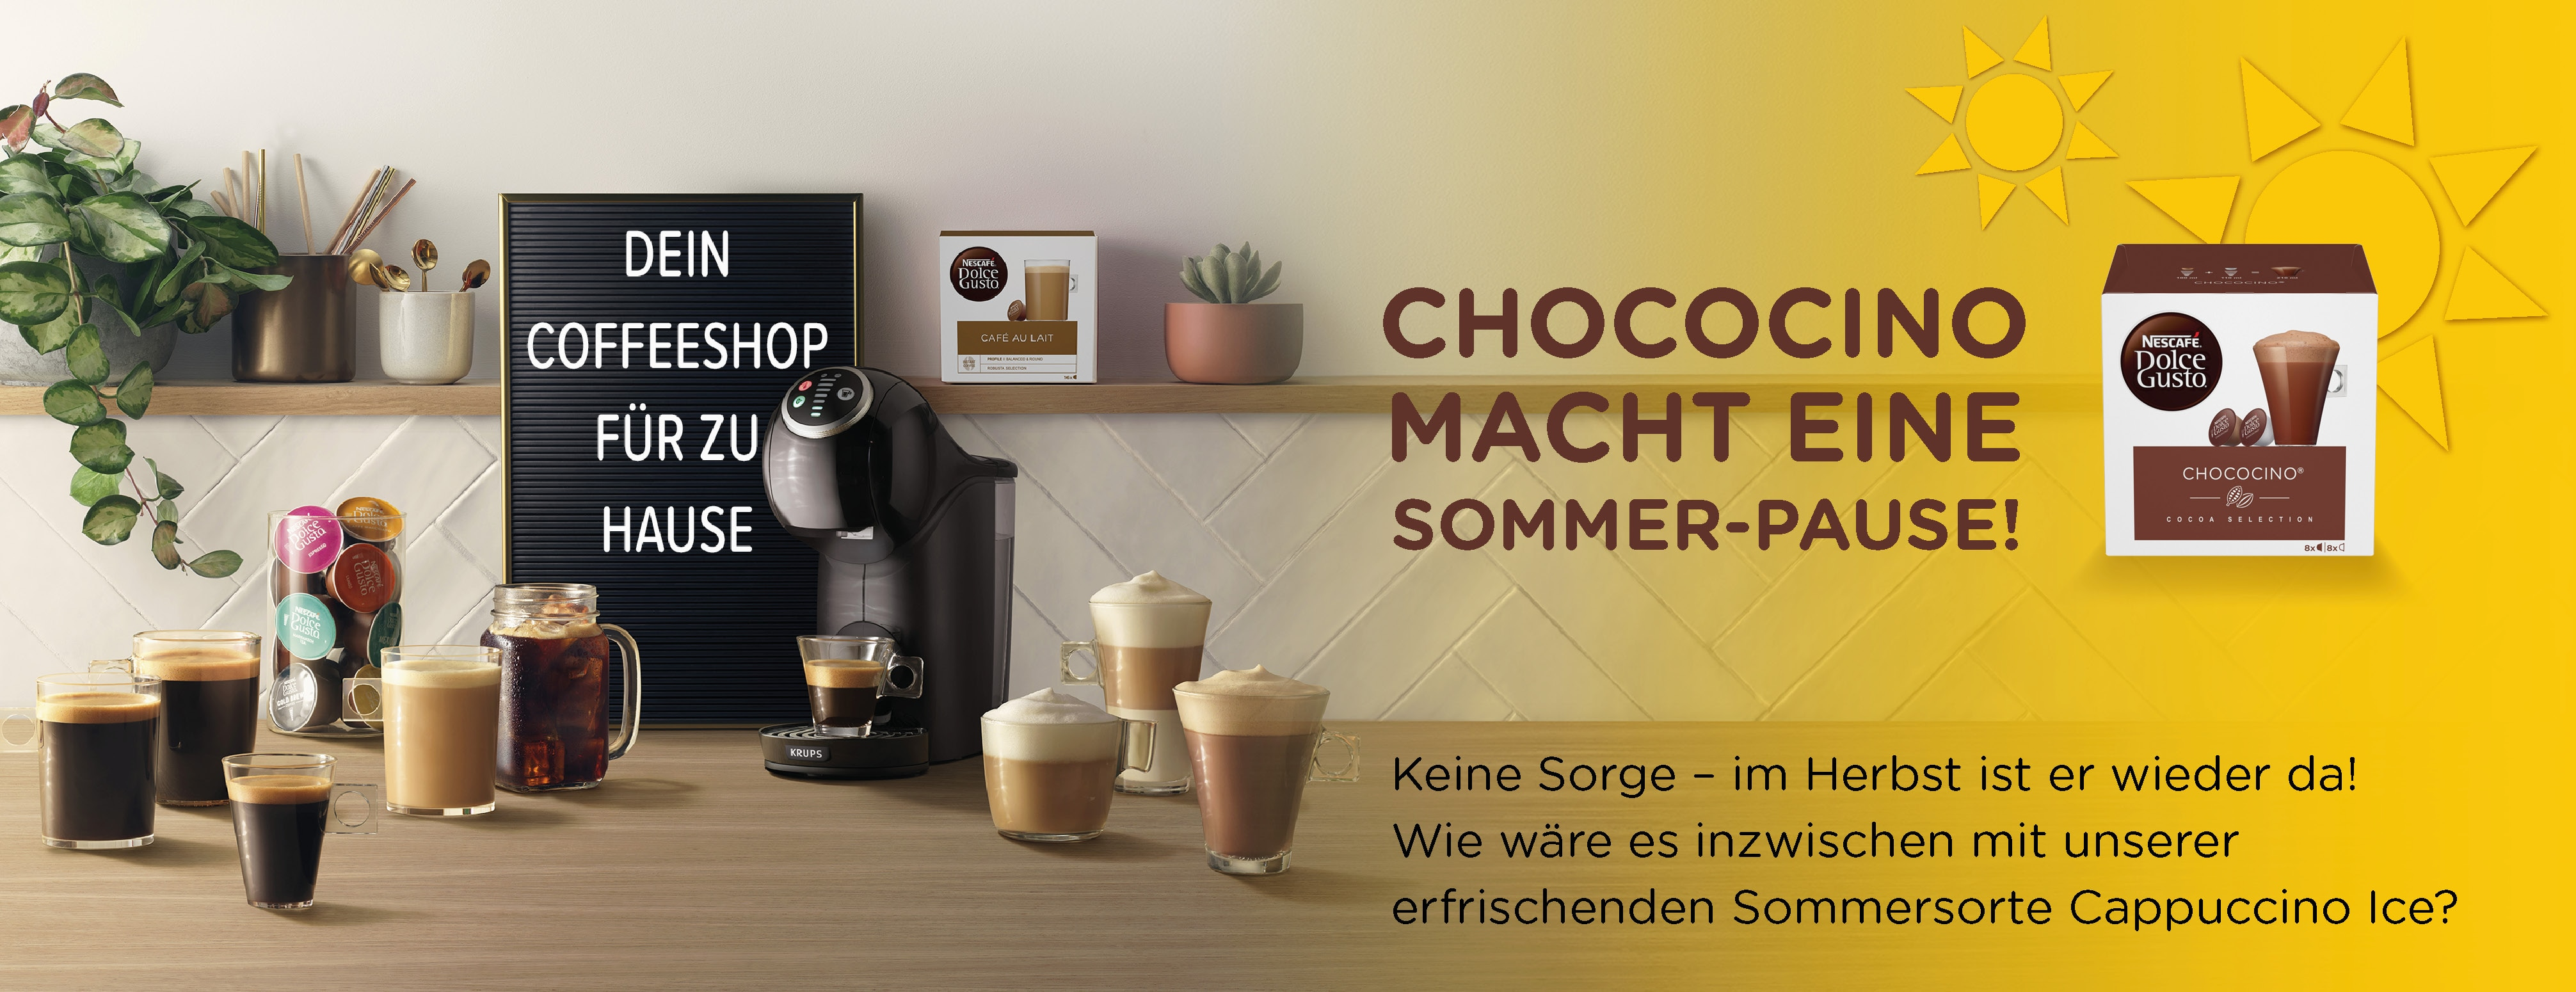 Chococino Sommerpause